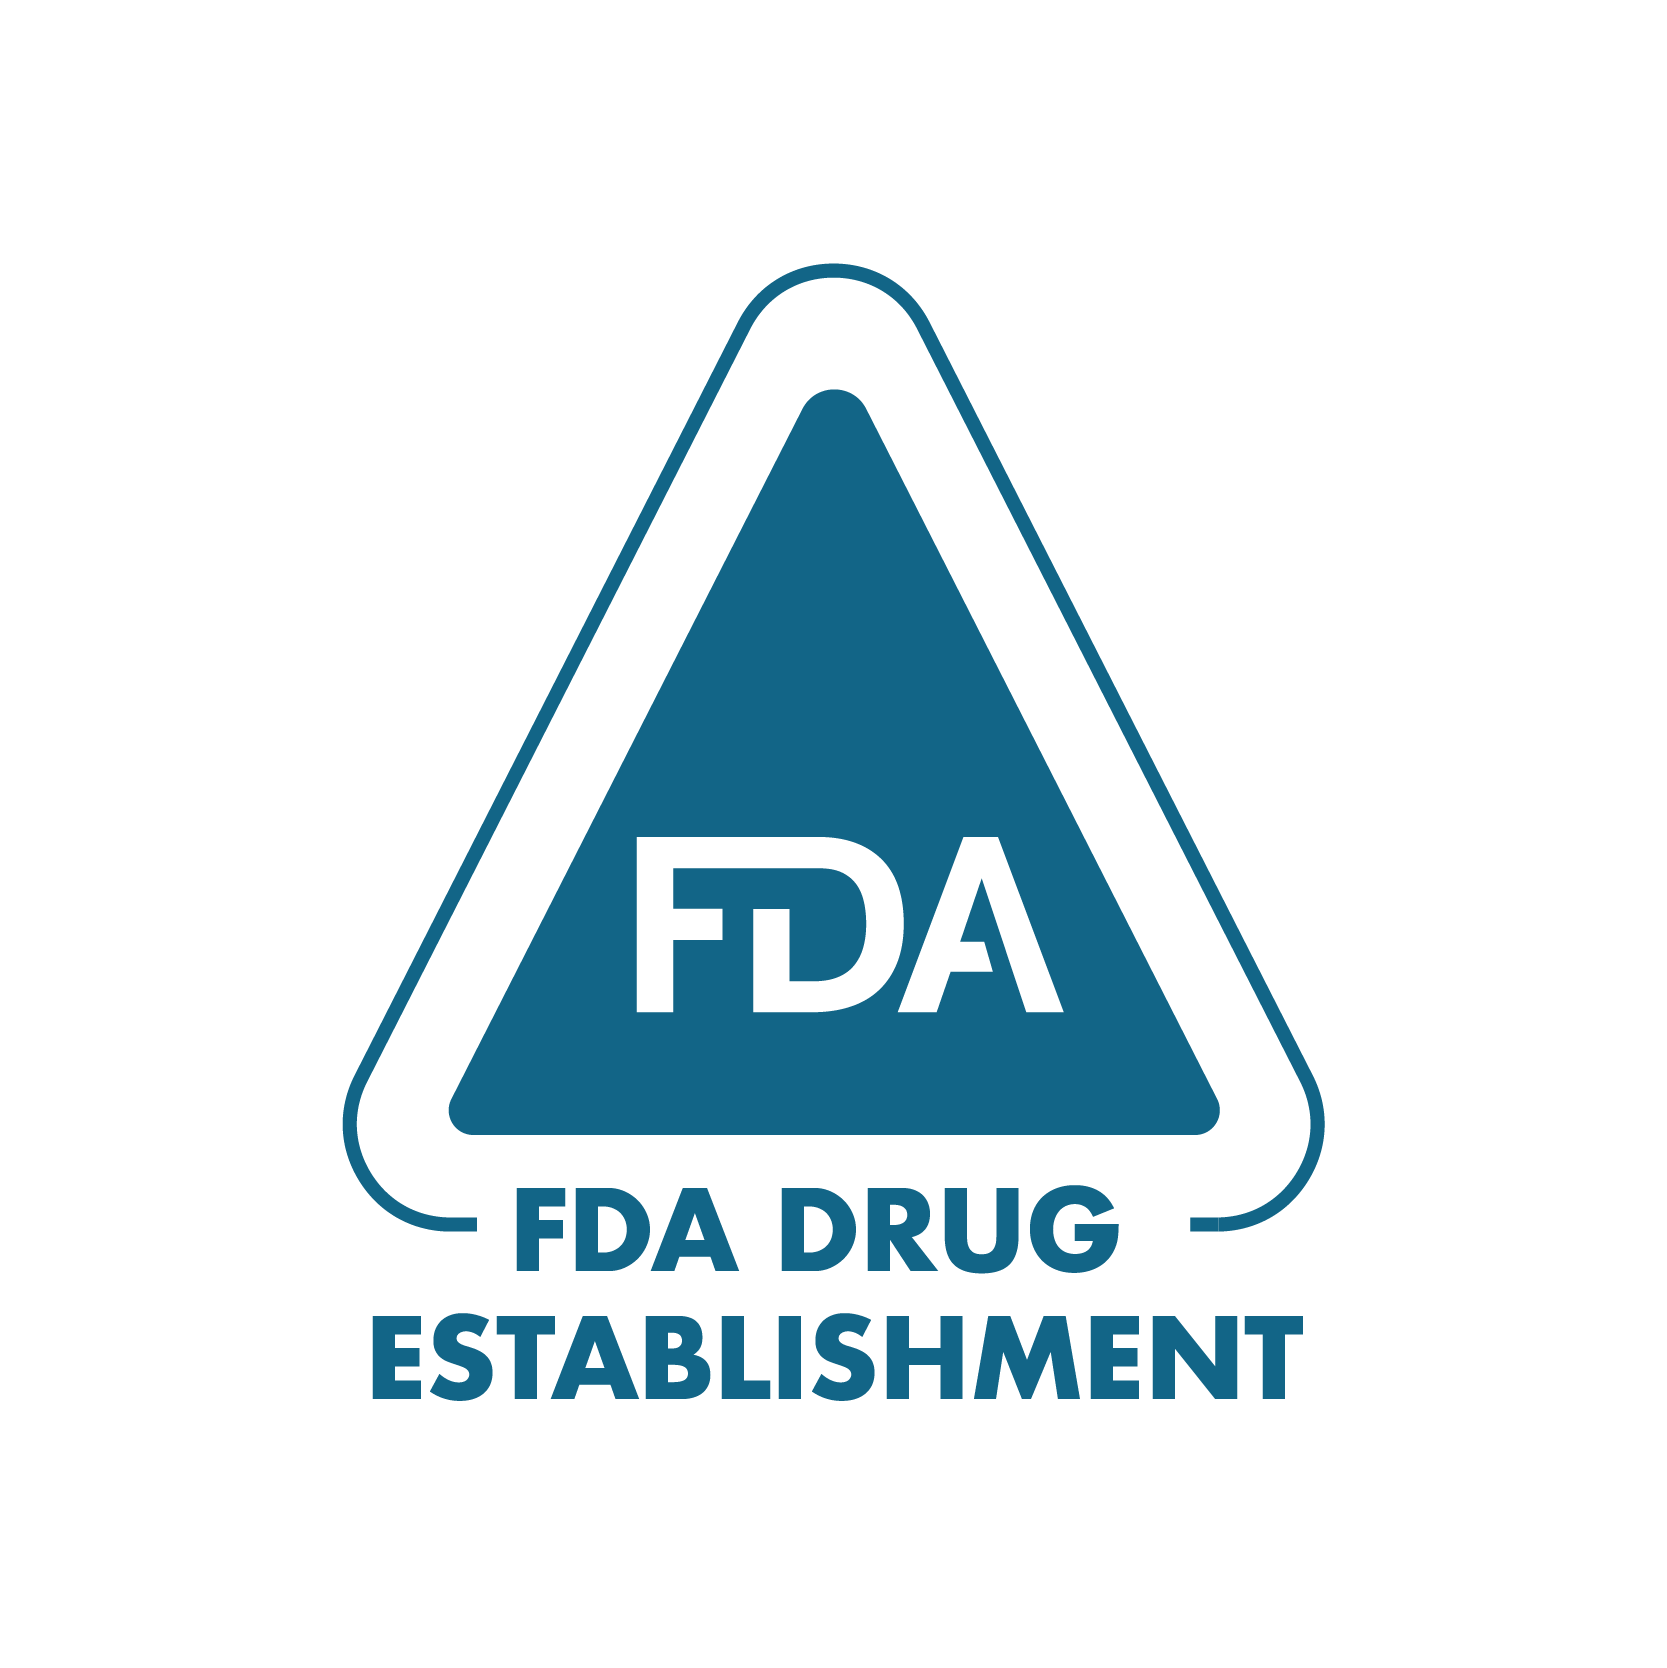 FDA Drug Establishment branded blue icon